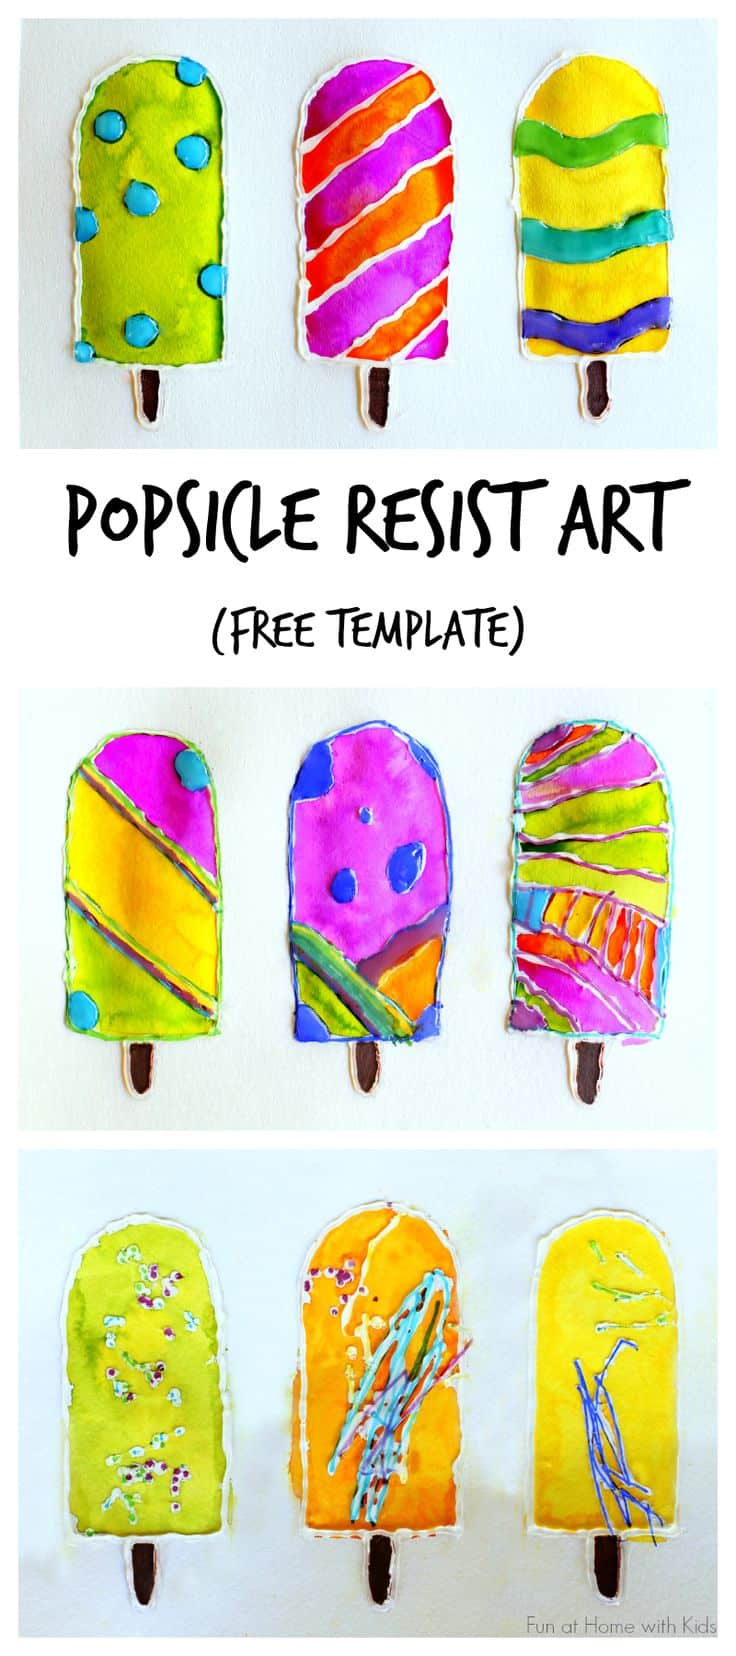 Awesome popsicle resist art